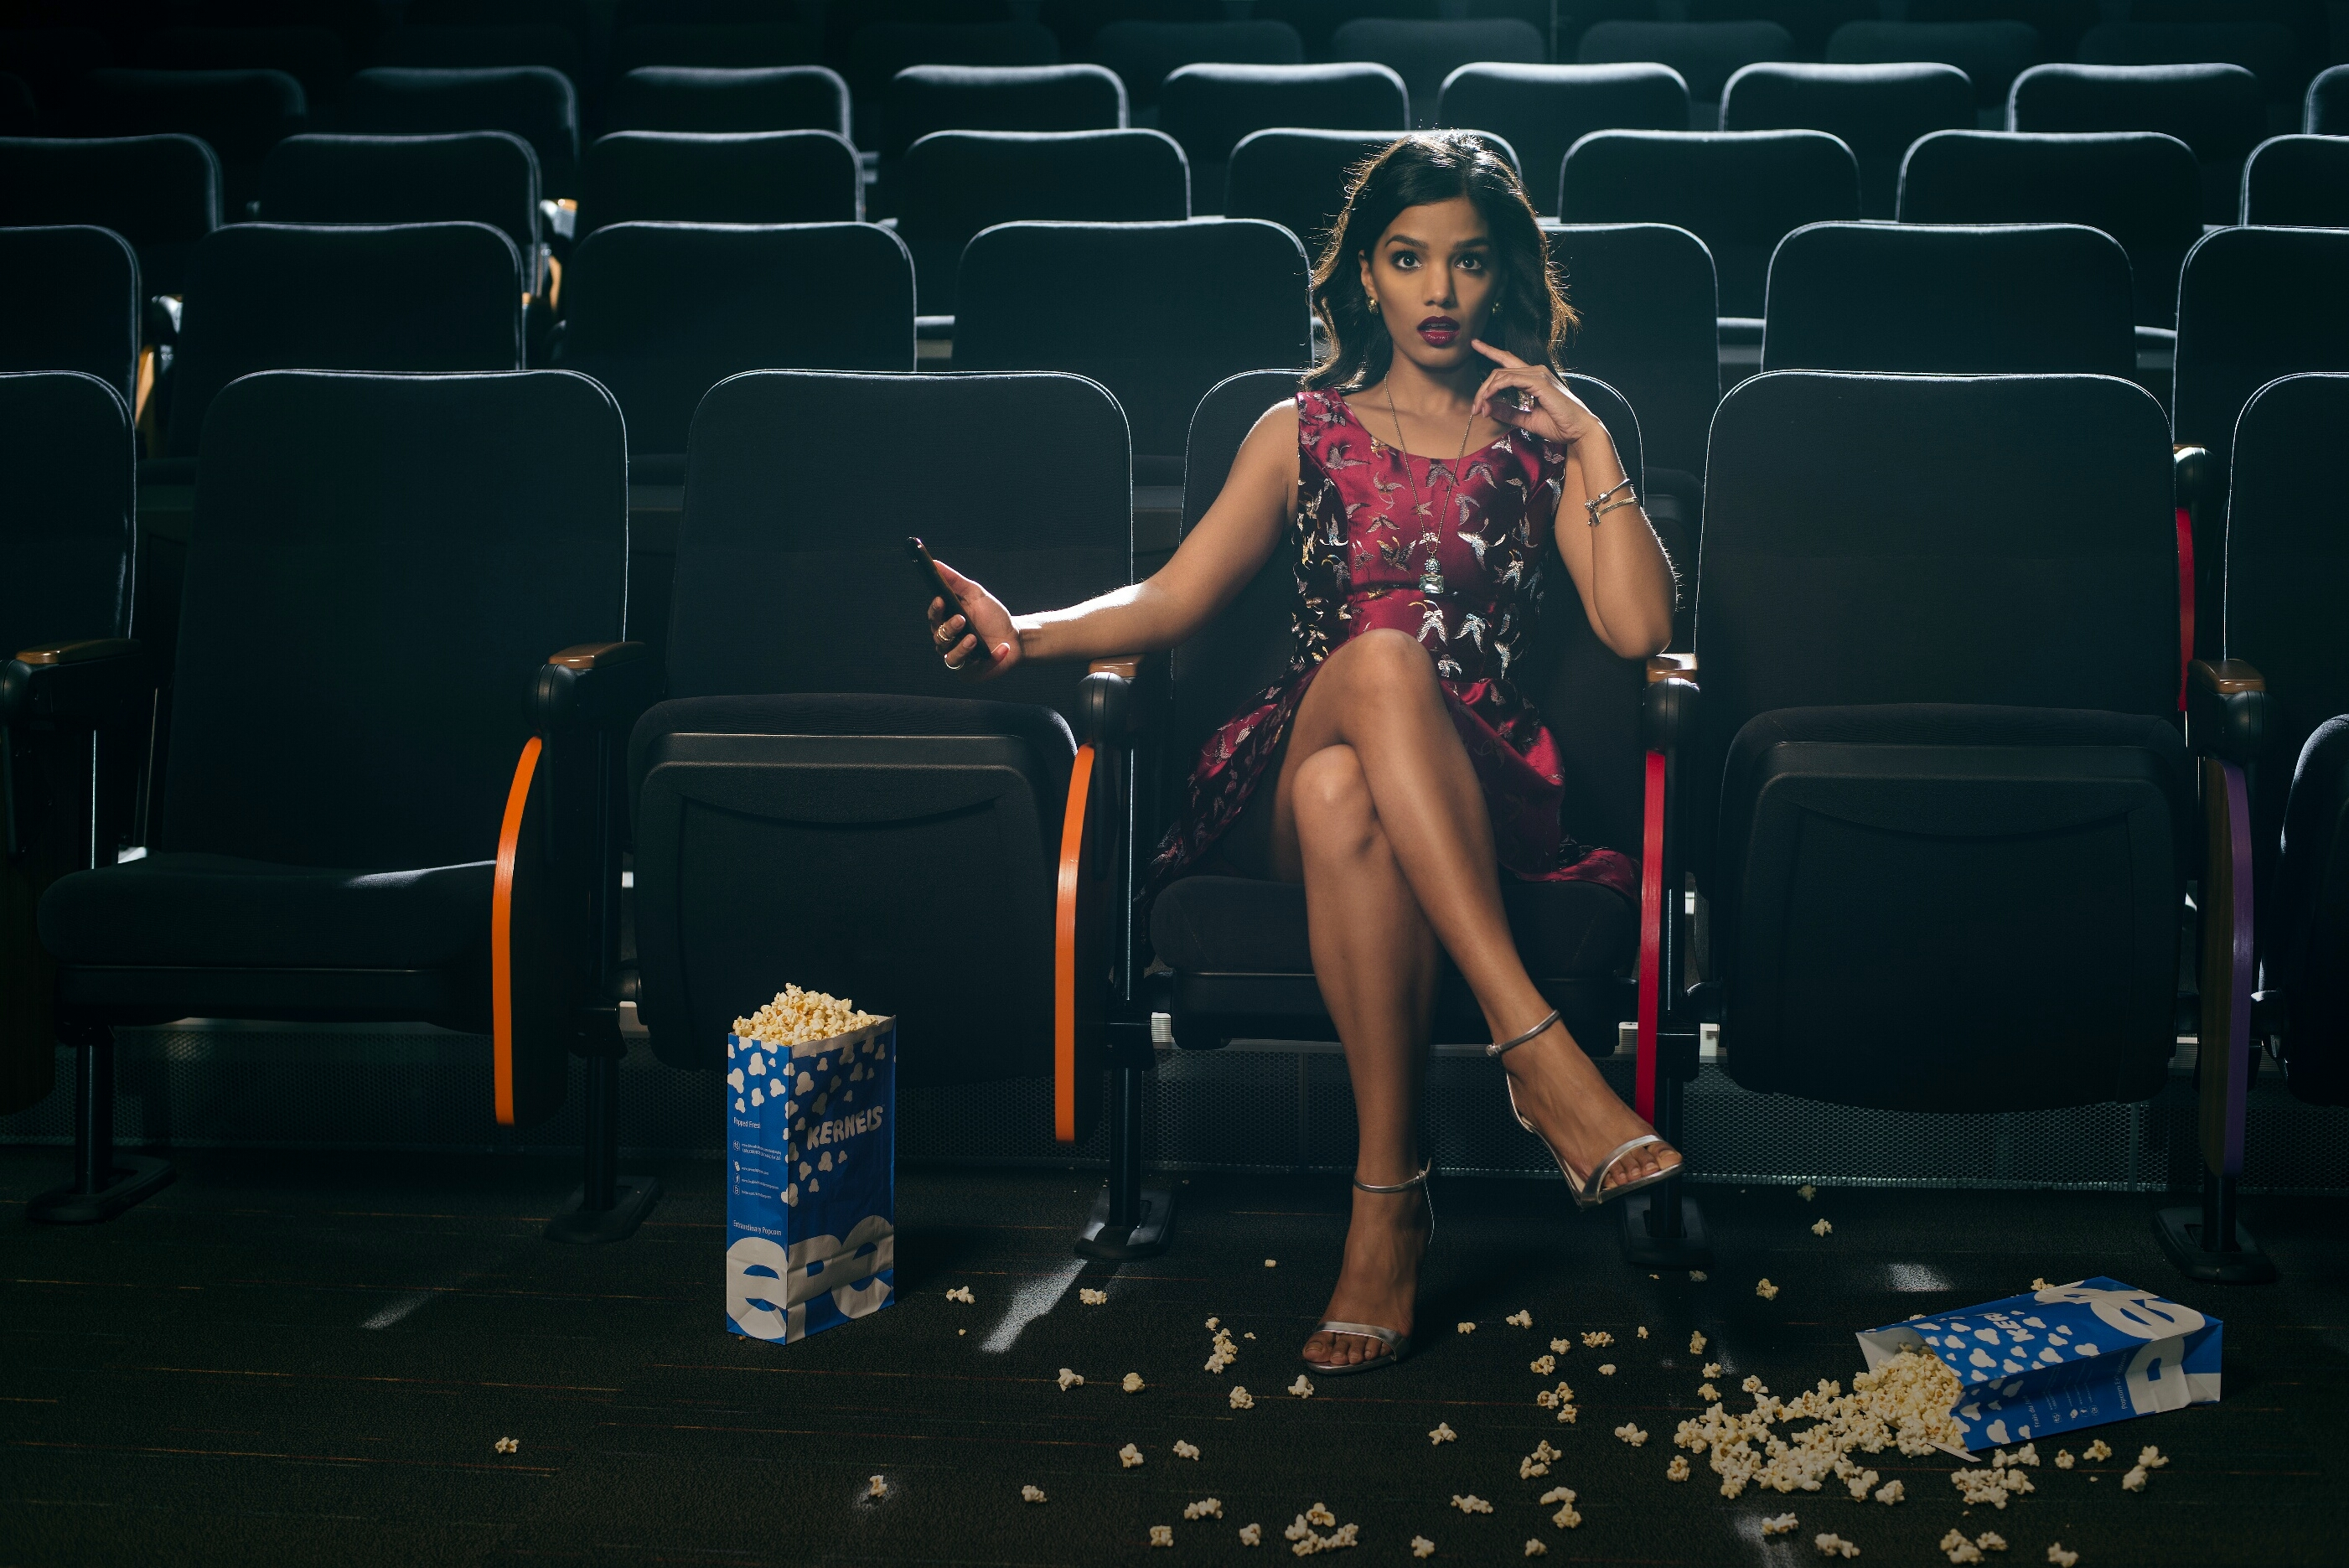 Sweet Shard sitting in a theatre with popcorn on the floor wearing her DIY red Chinese brocade dress